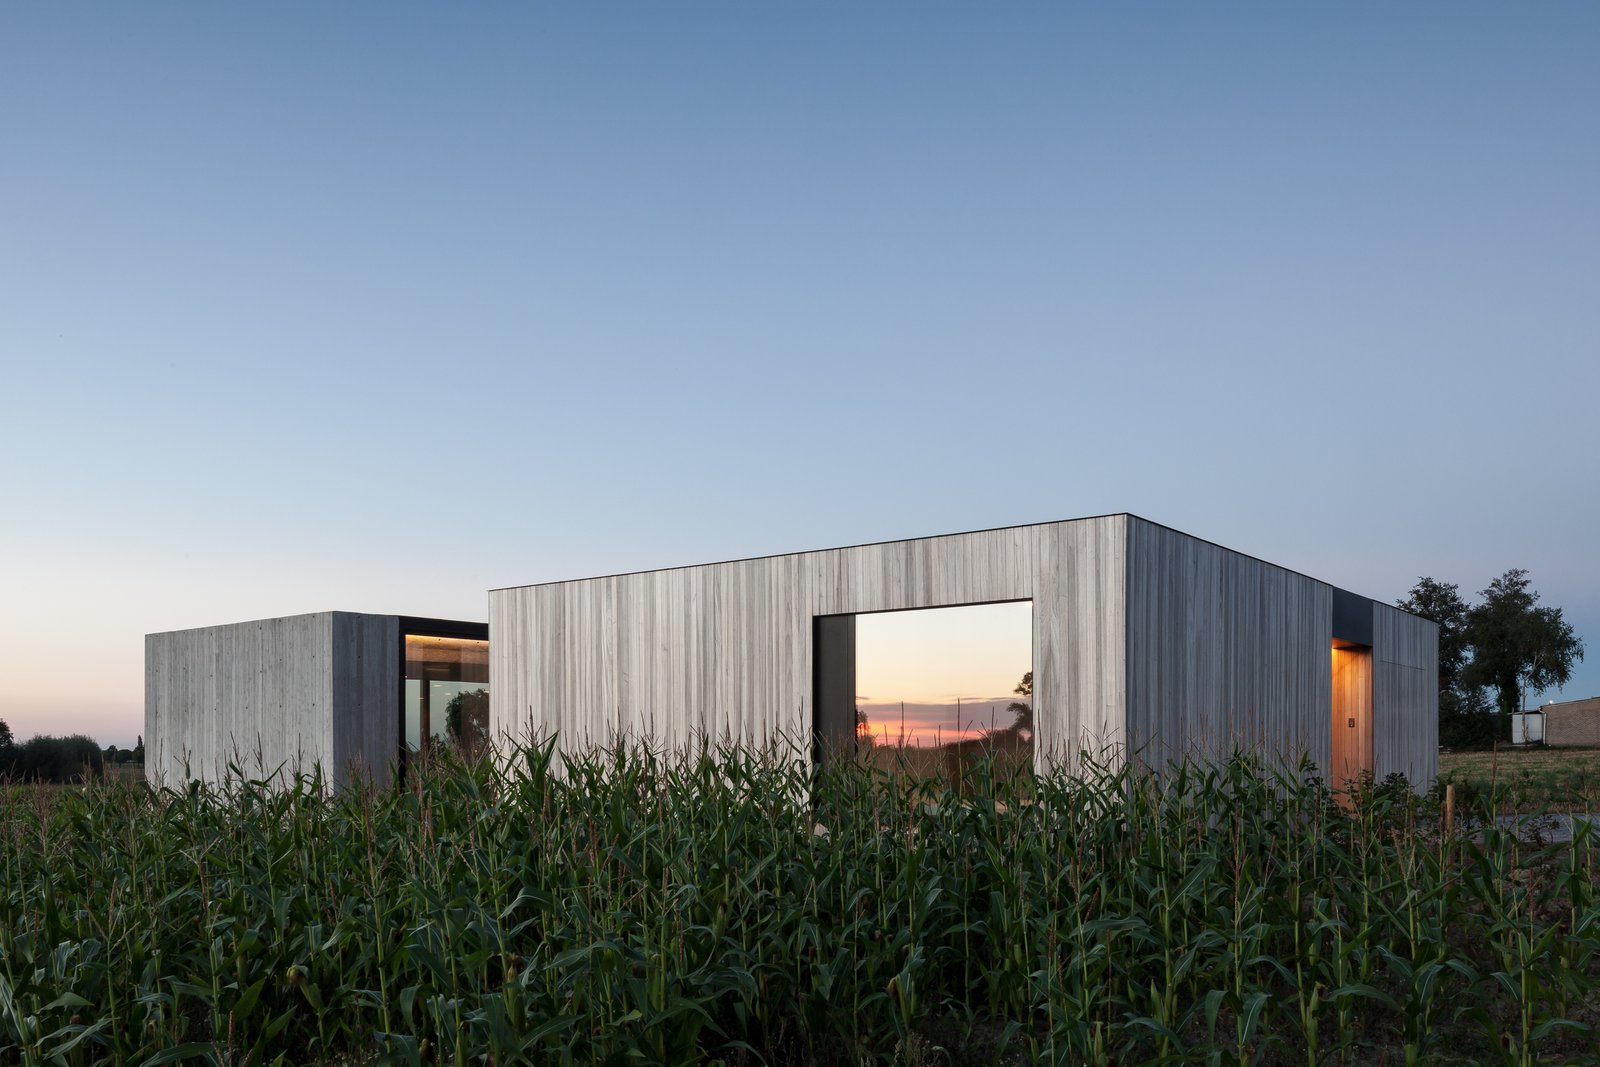 Photo 1 of 14 in Defying traditionalism: concrete bungalow inserted in a rural Belgian landscape